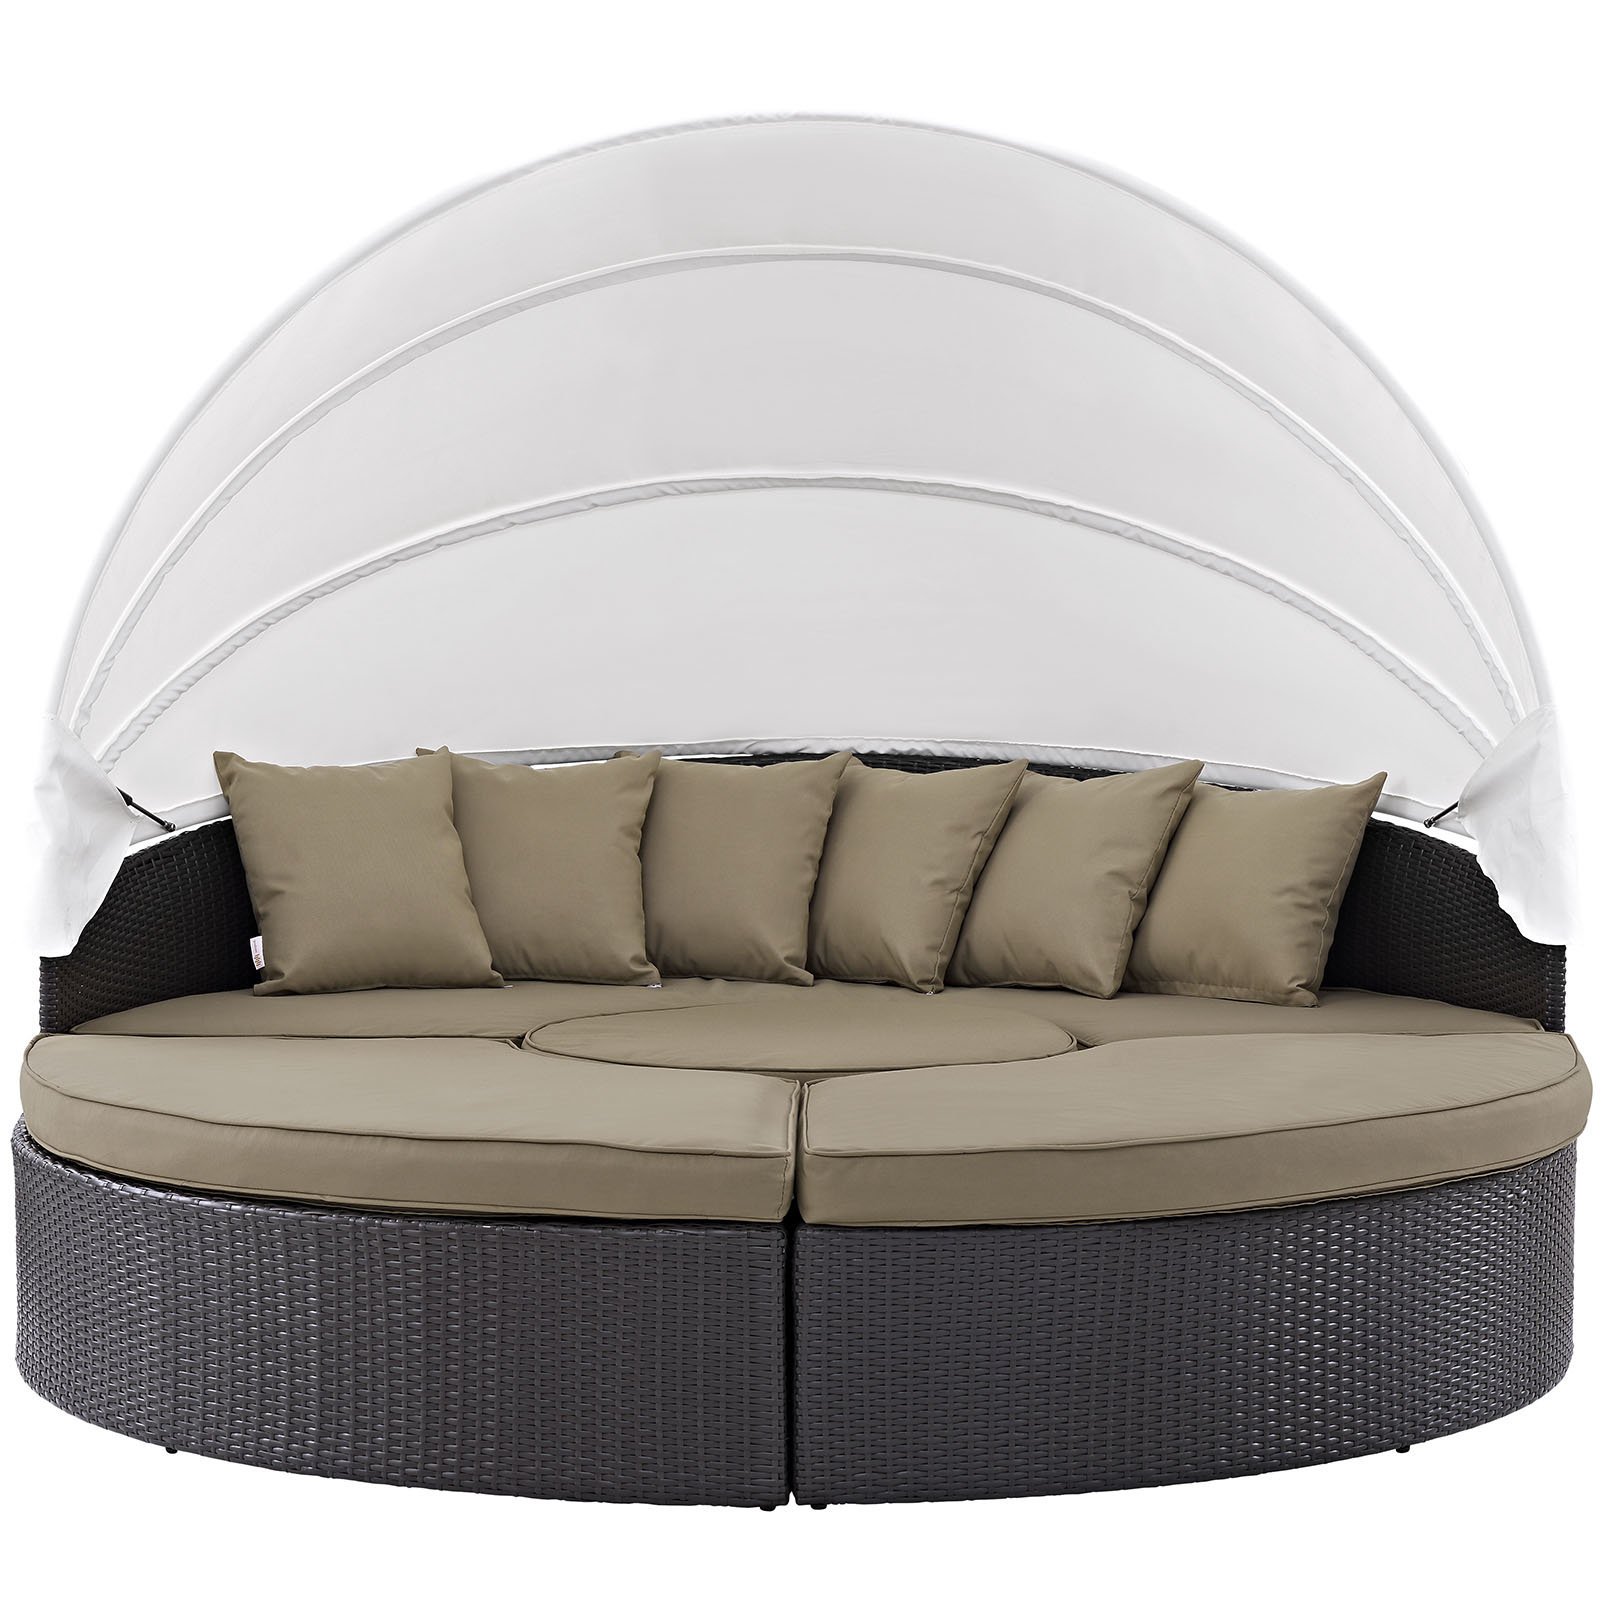 Current Fansler Patio Daybeds With Cushions For Brentwood Patio Daybed With Cushions (View 4 of 20)